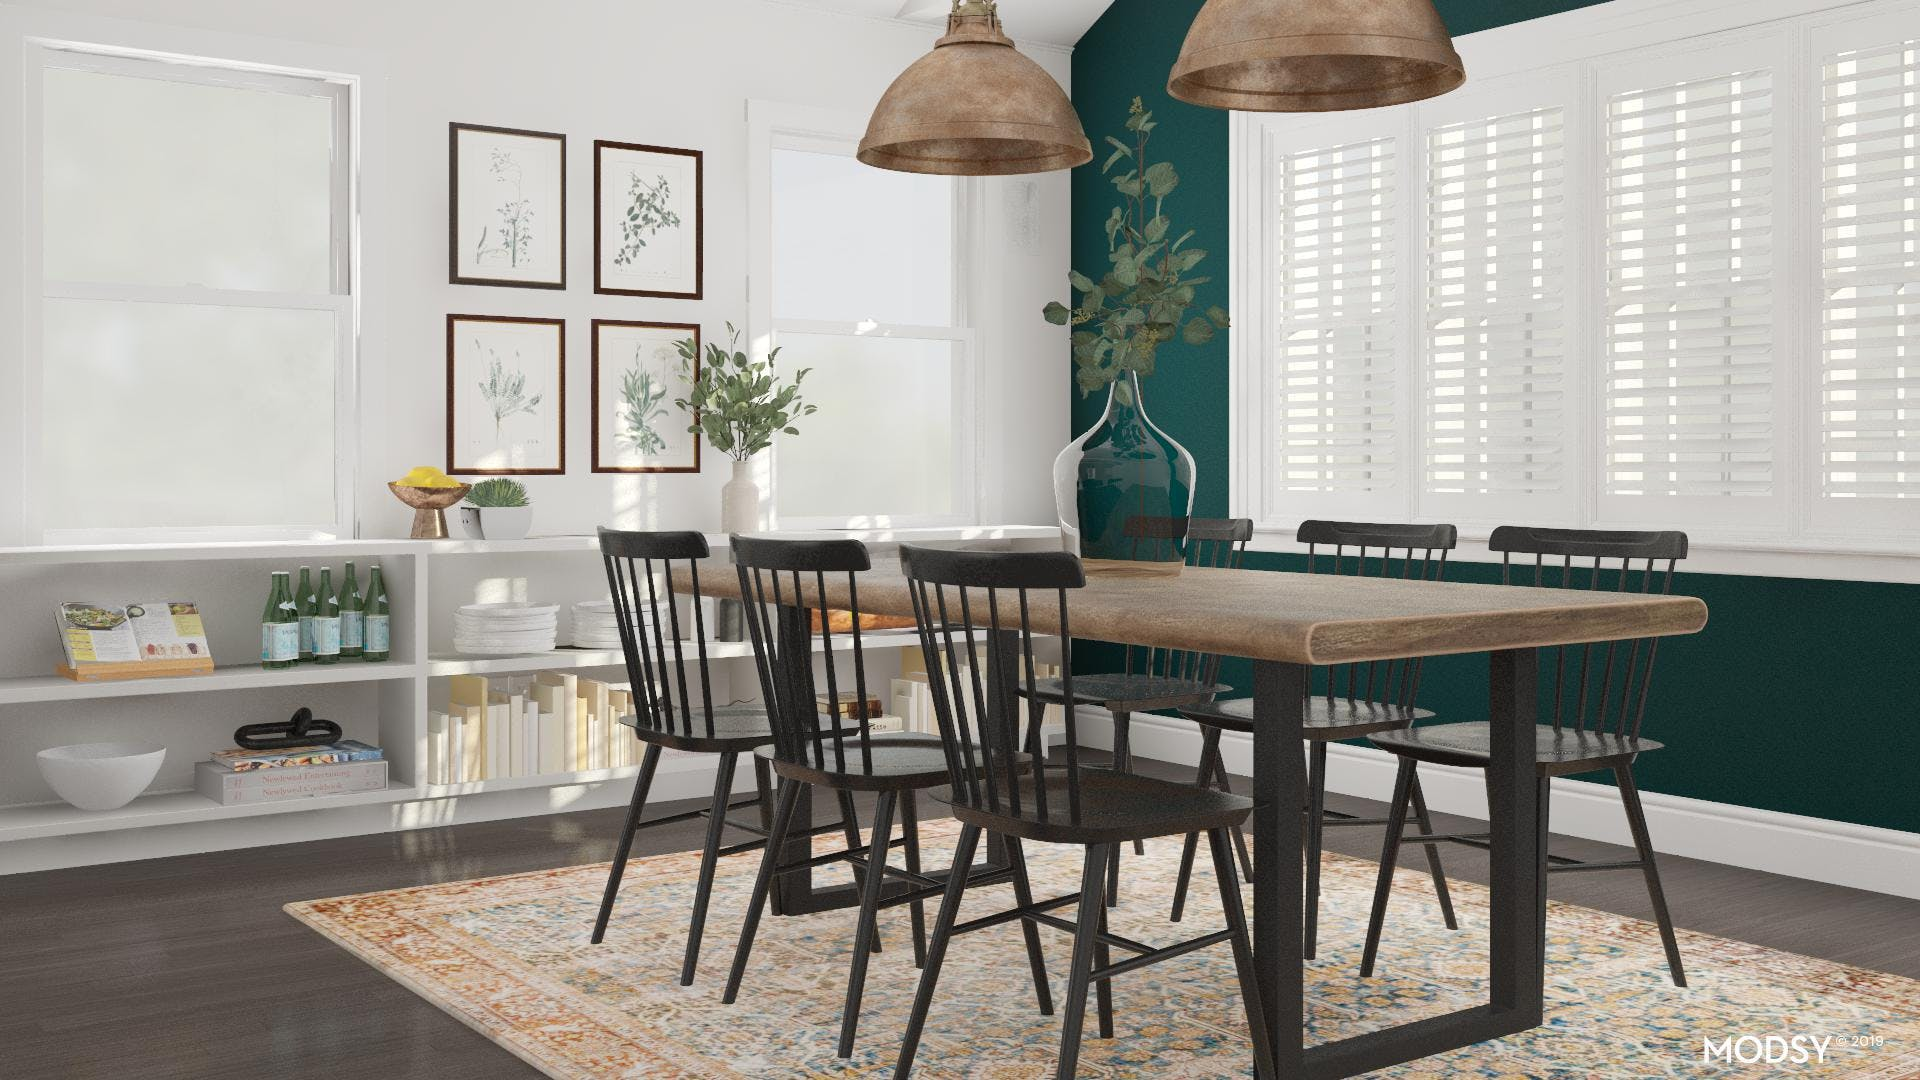 Modern Rustic Dining Room With Green Accent Wall